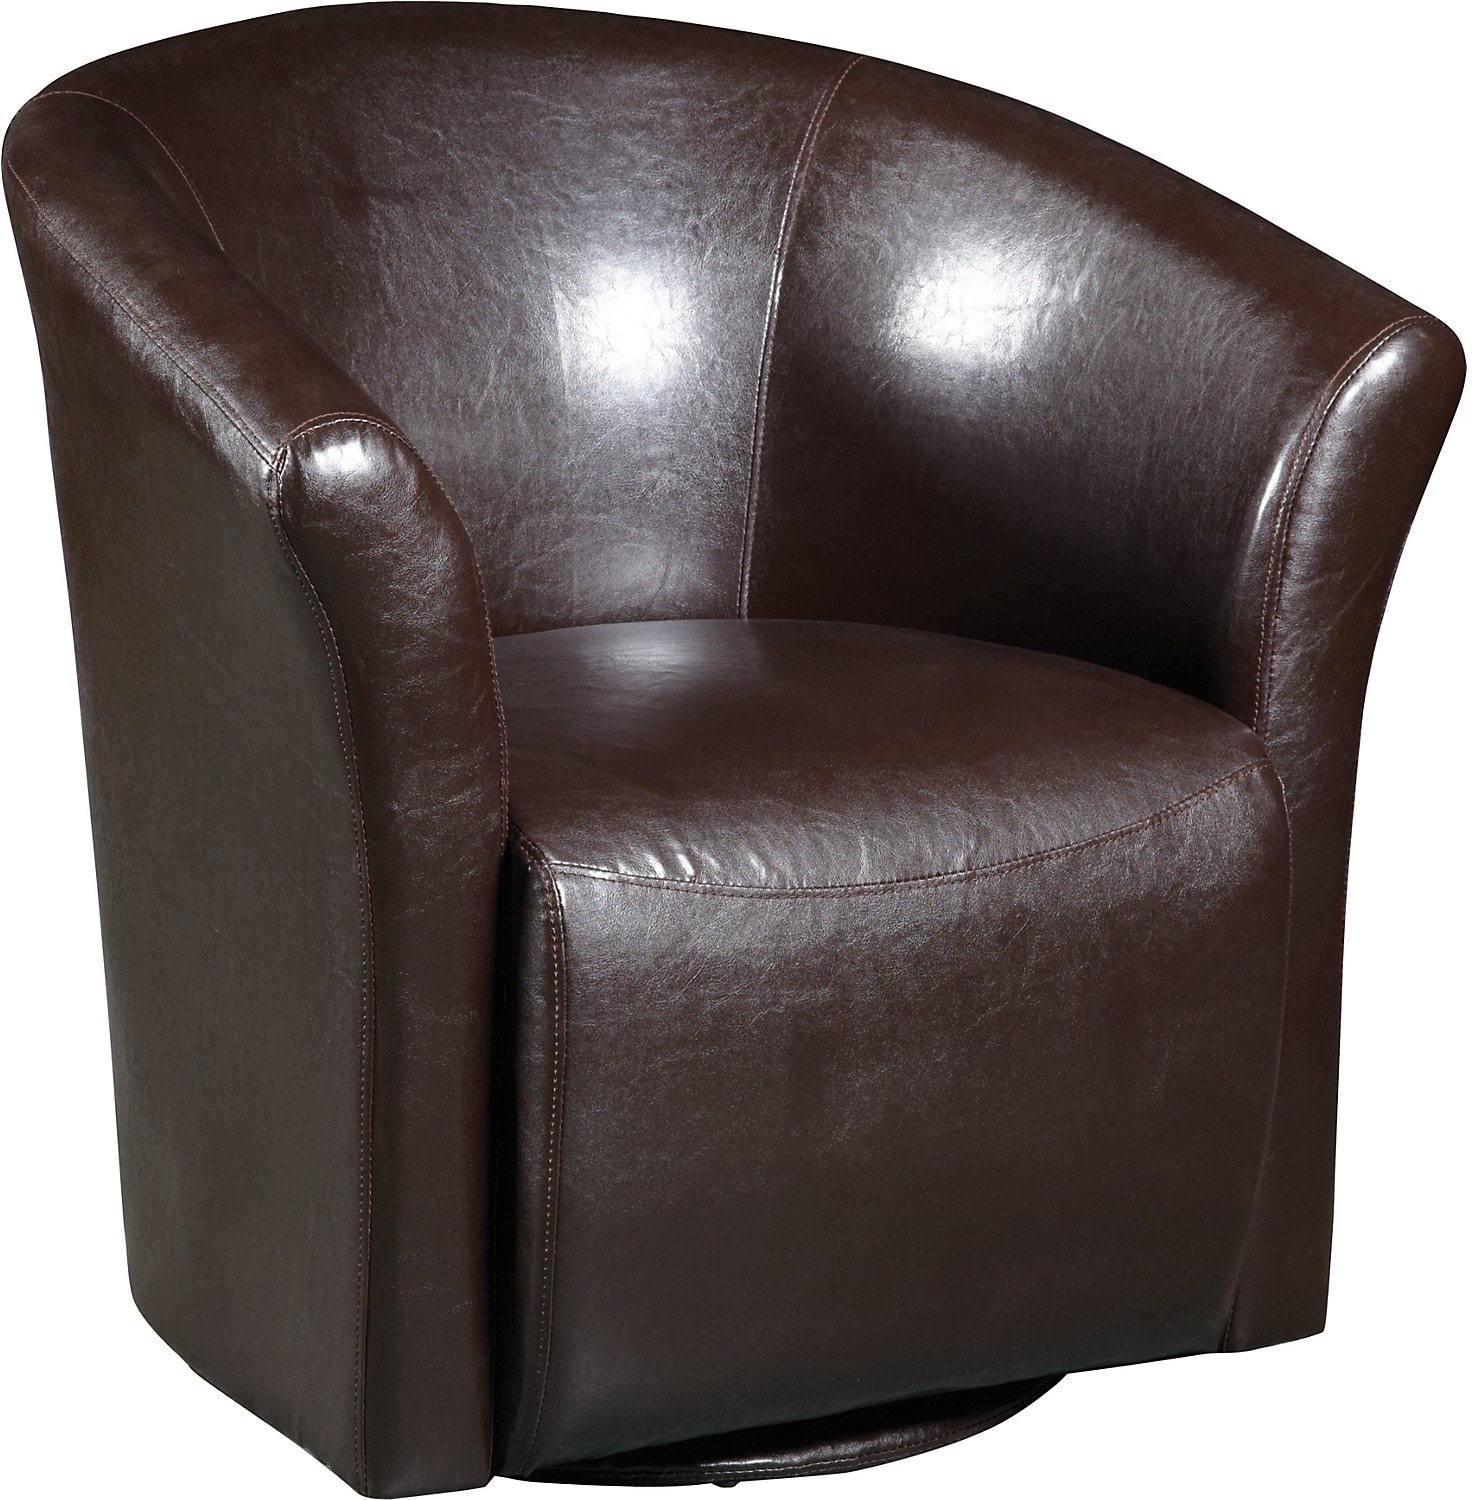 Swivel Accent Chair Brown Swivel Accent Chair The Brick